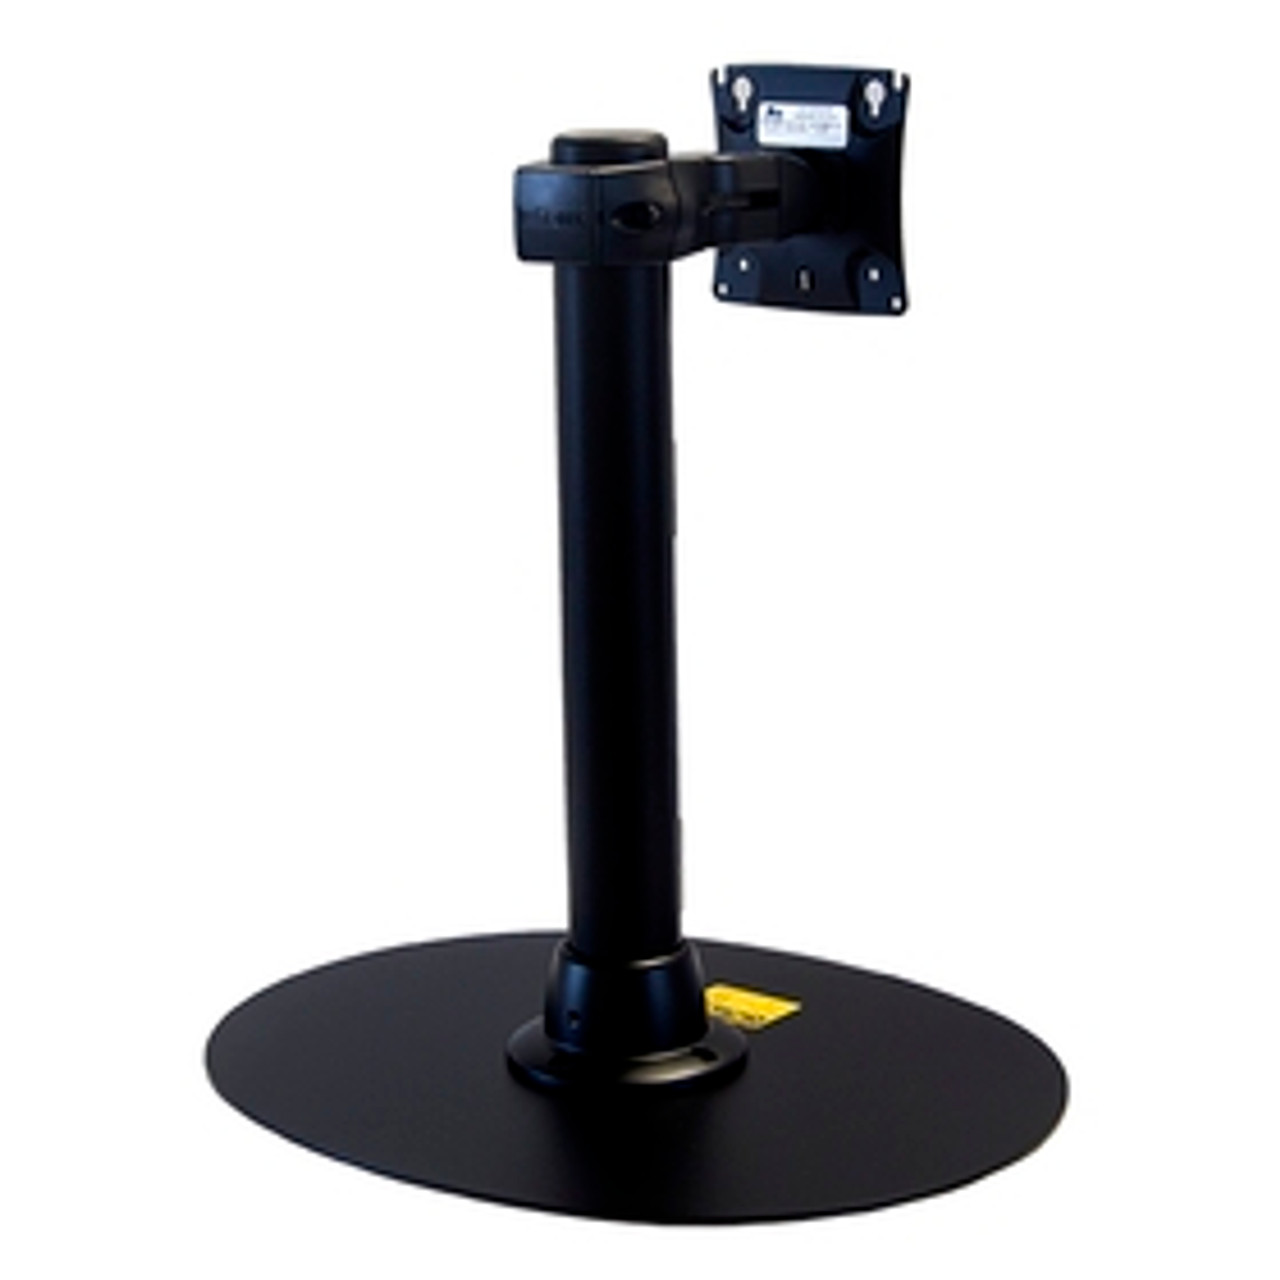 POS Preconfigured Monitor Mount Double Pivot With Desk Clamp 16 inch Pole